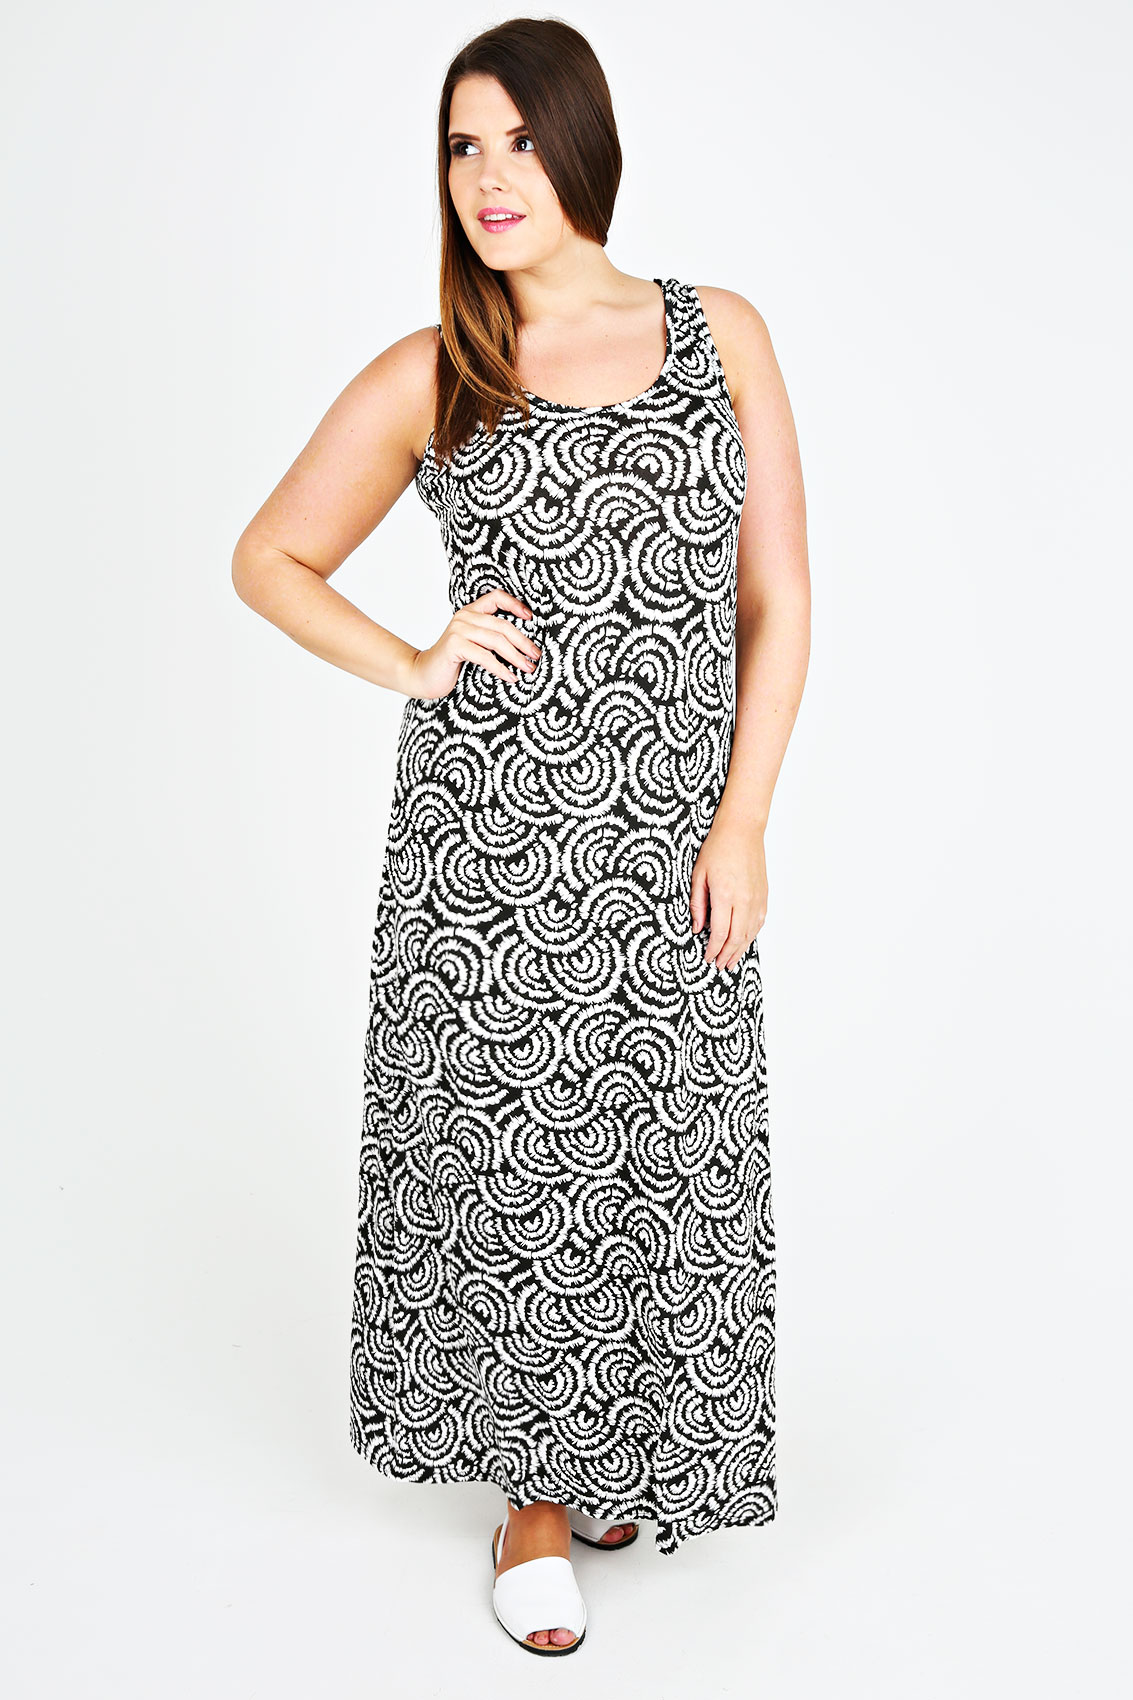 Black white swirl print jersey maxi dress plus size 14 for 20 34 35 dress shirts